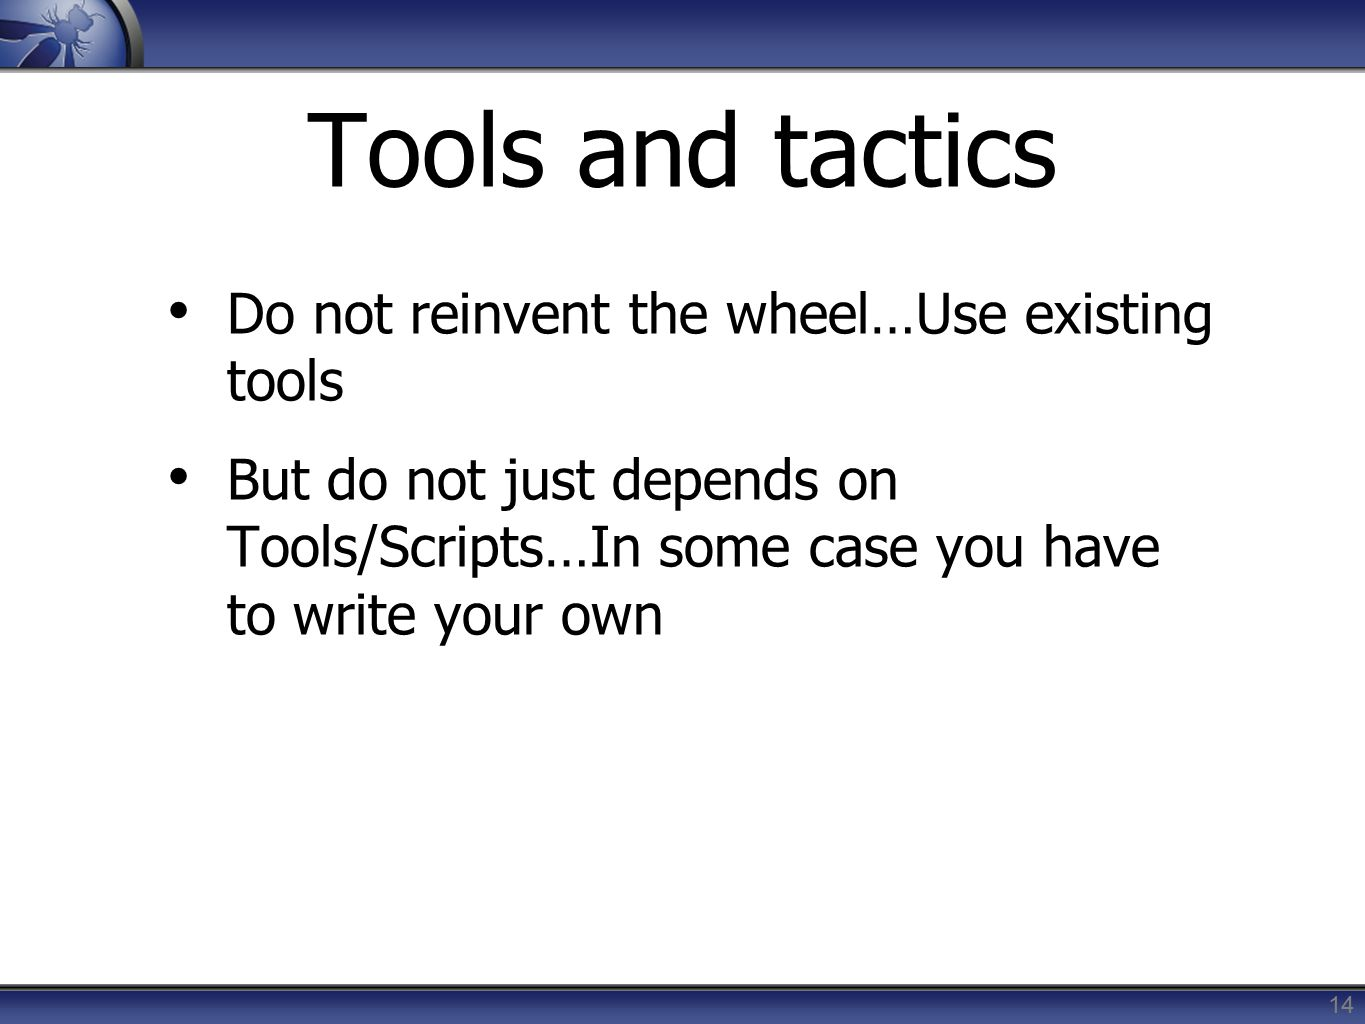 Tools and tactics Do not reinvent the wheel…Use existing tools But do not just depends on Tools/Scripts…In some case you have to write your own 14